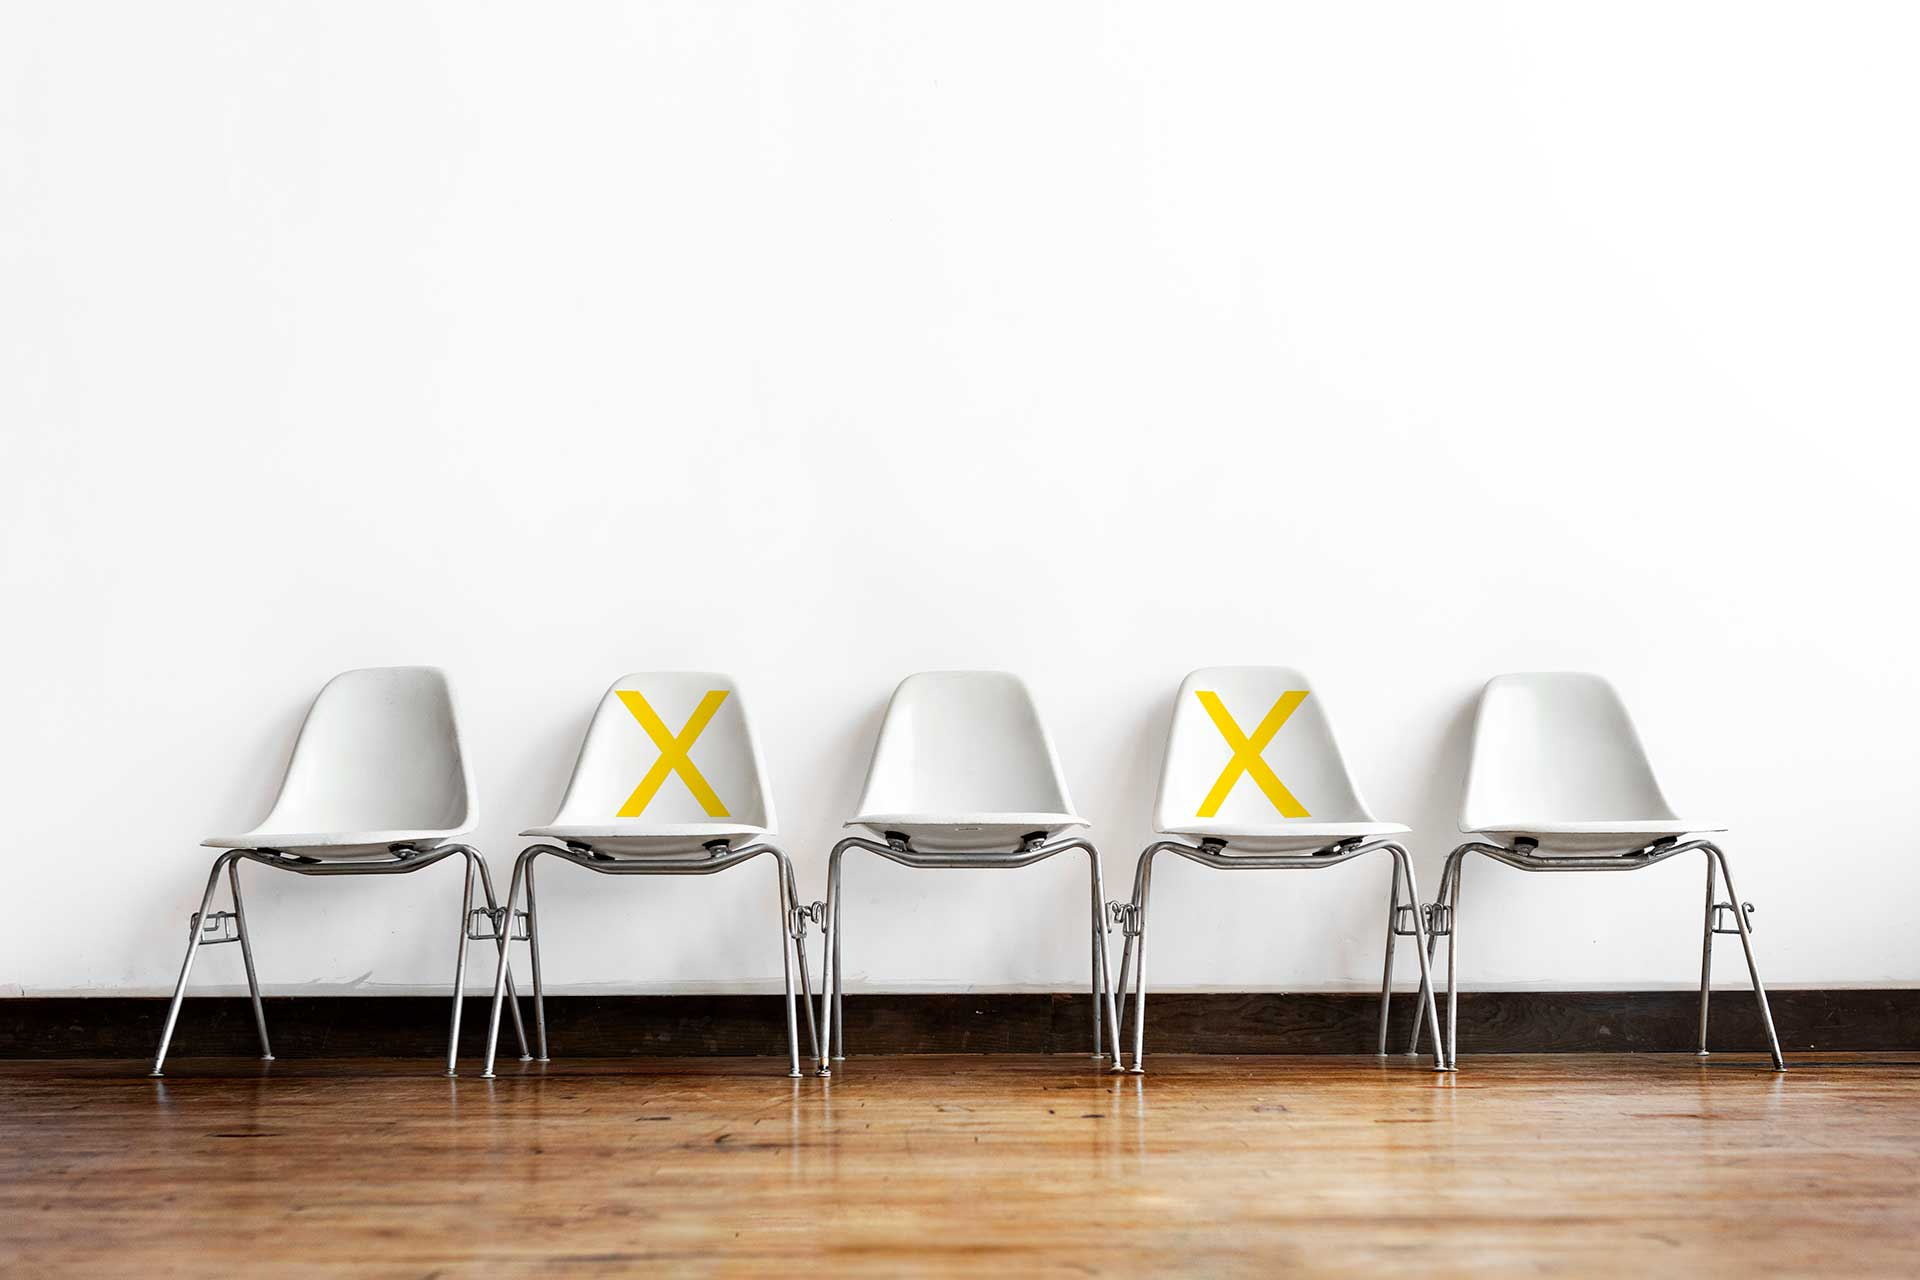 Social distancing chairs in a room